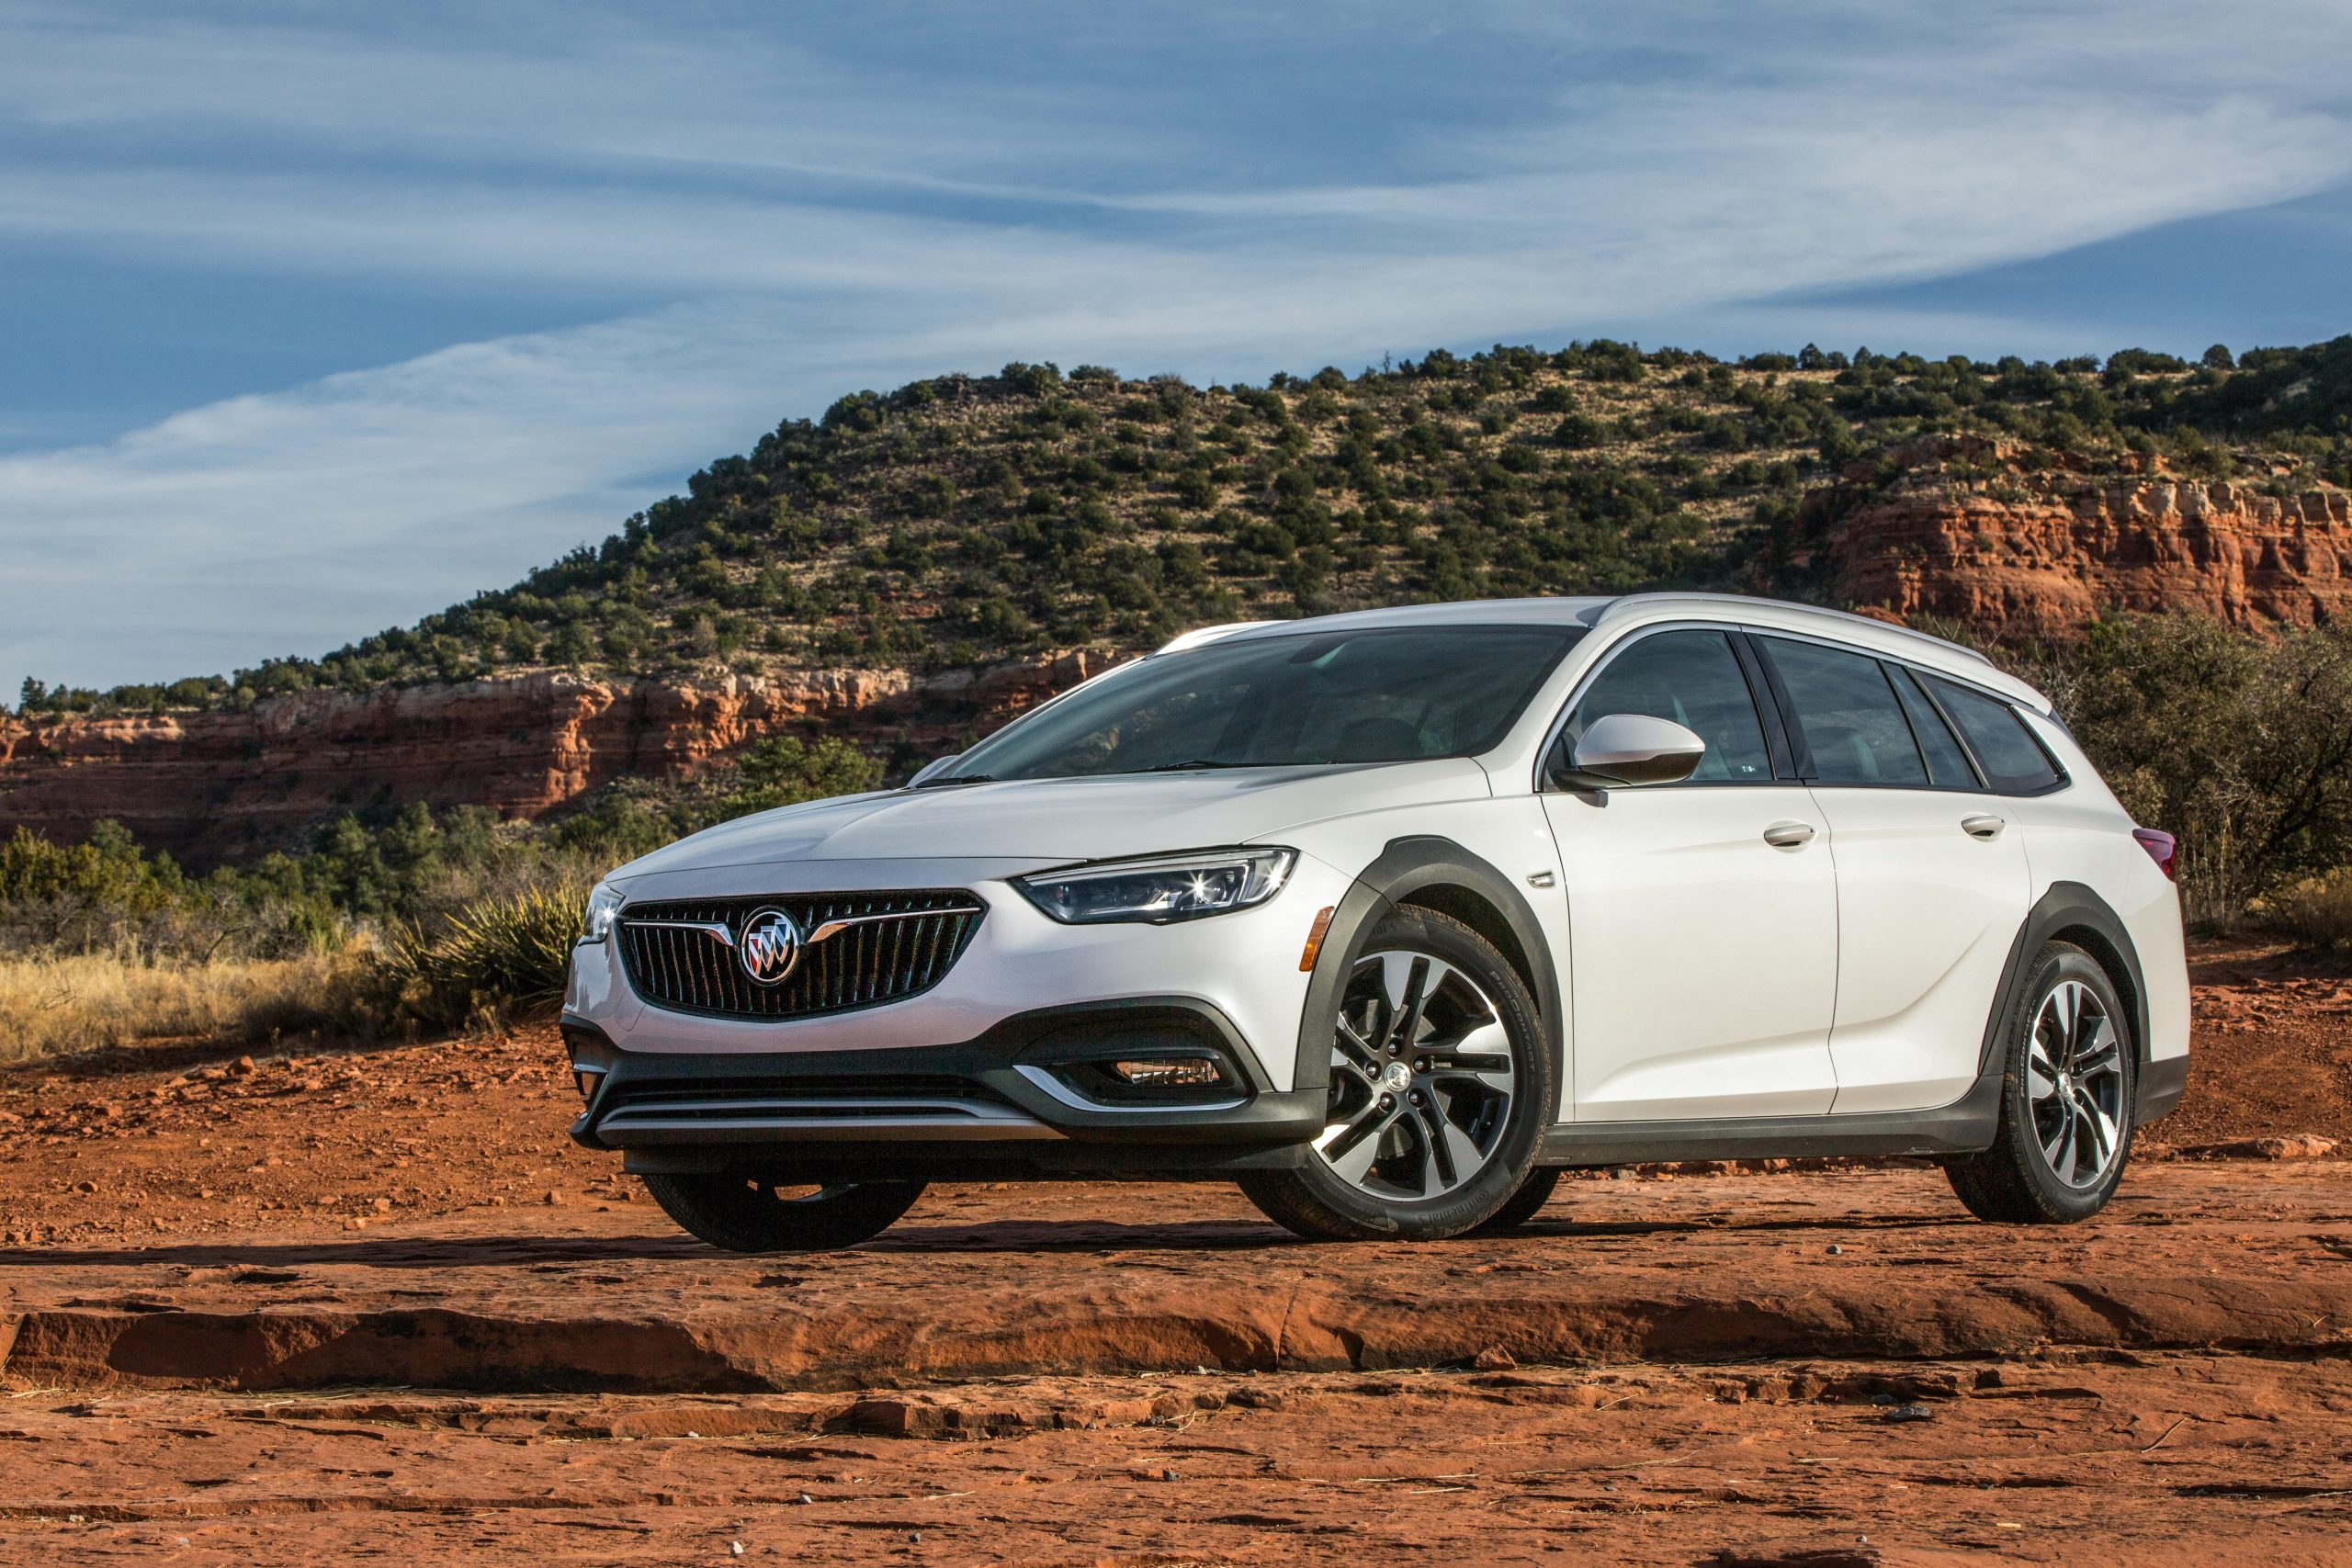 2018 Buick Regal Tourx Second Take: King Of The Wagon New 2022 Buick Regal Tourx Review, Specs, 0-60